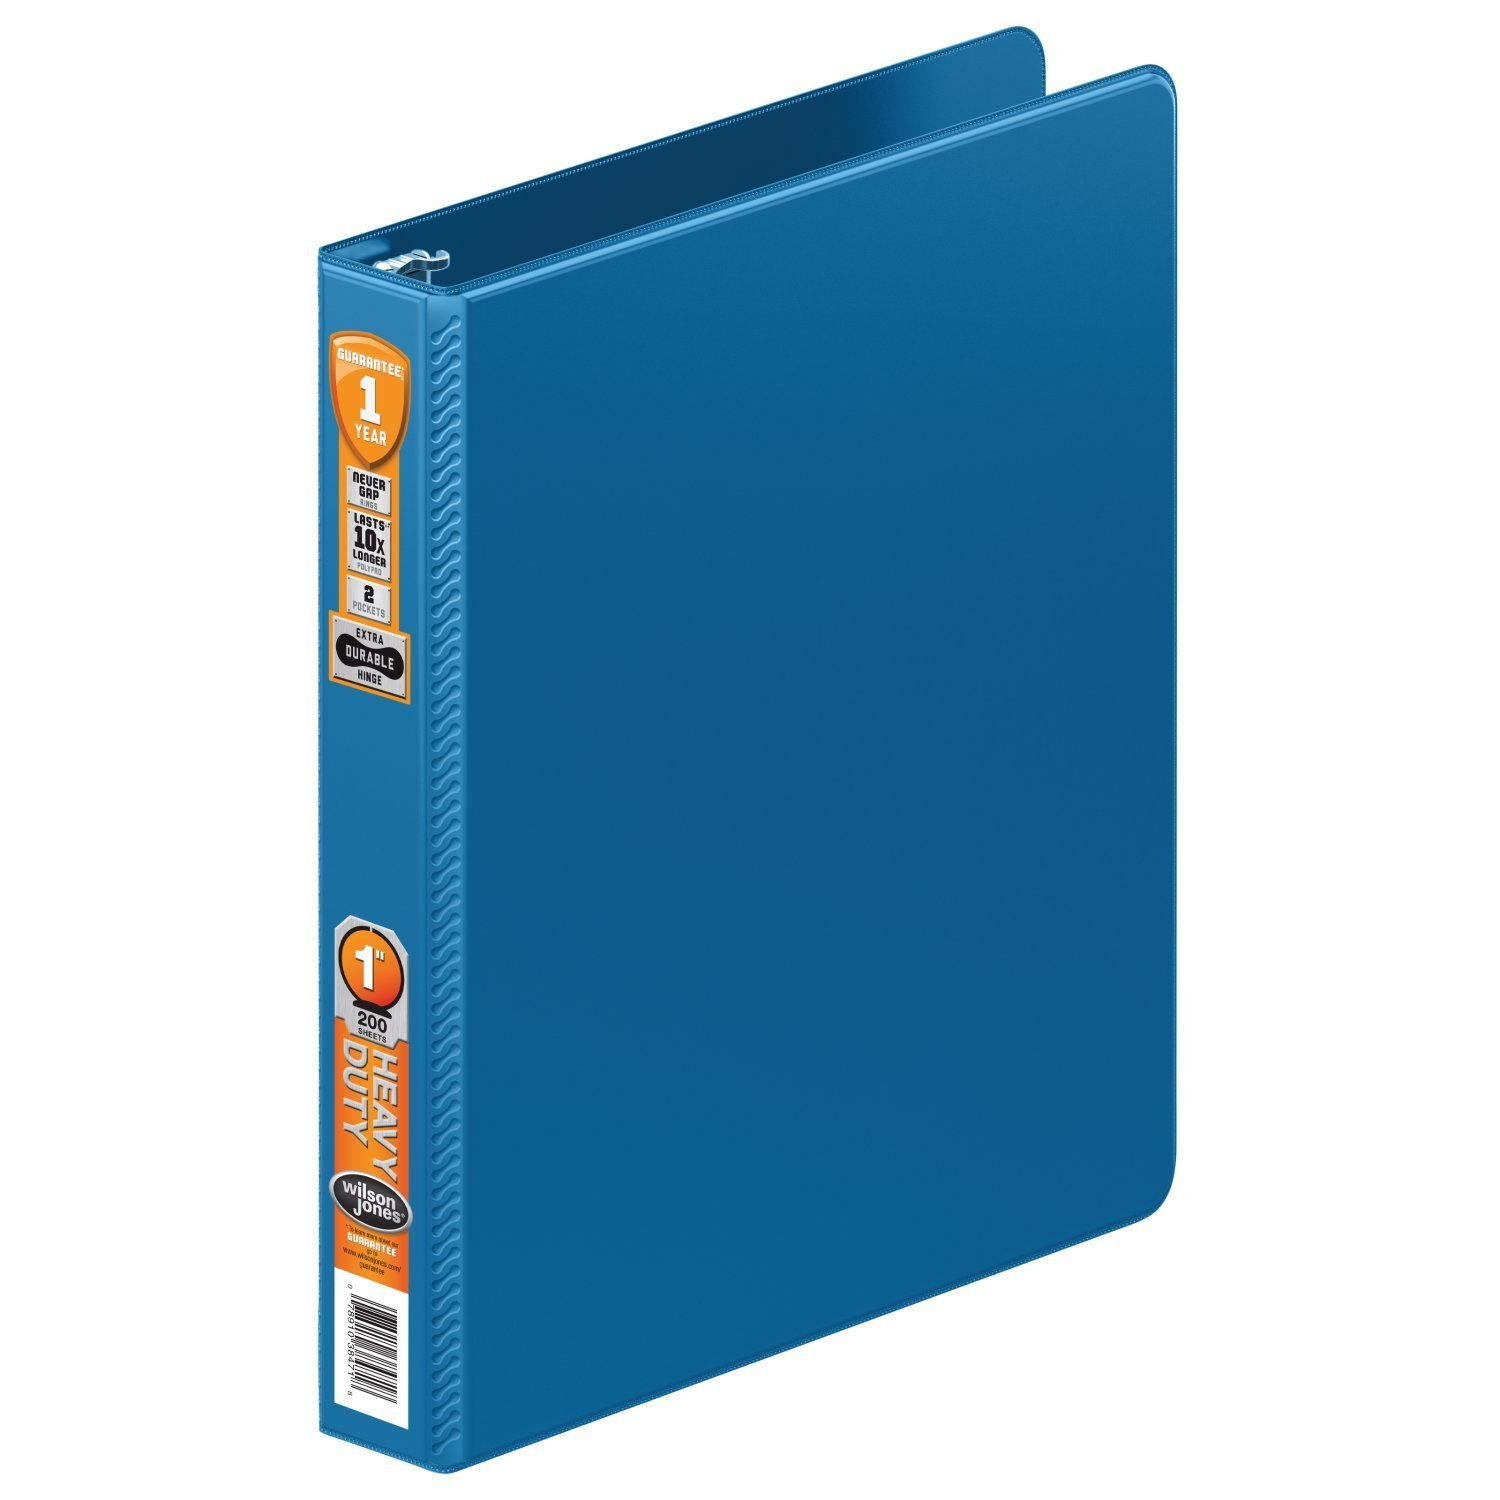 Wilson Jones Heavy Duty Round Ring Binder with Extra Durable Hinge, 1-Inch, PC Blue (W364-14-7462)